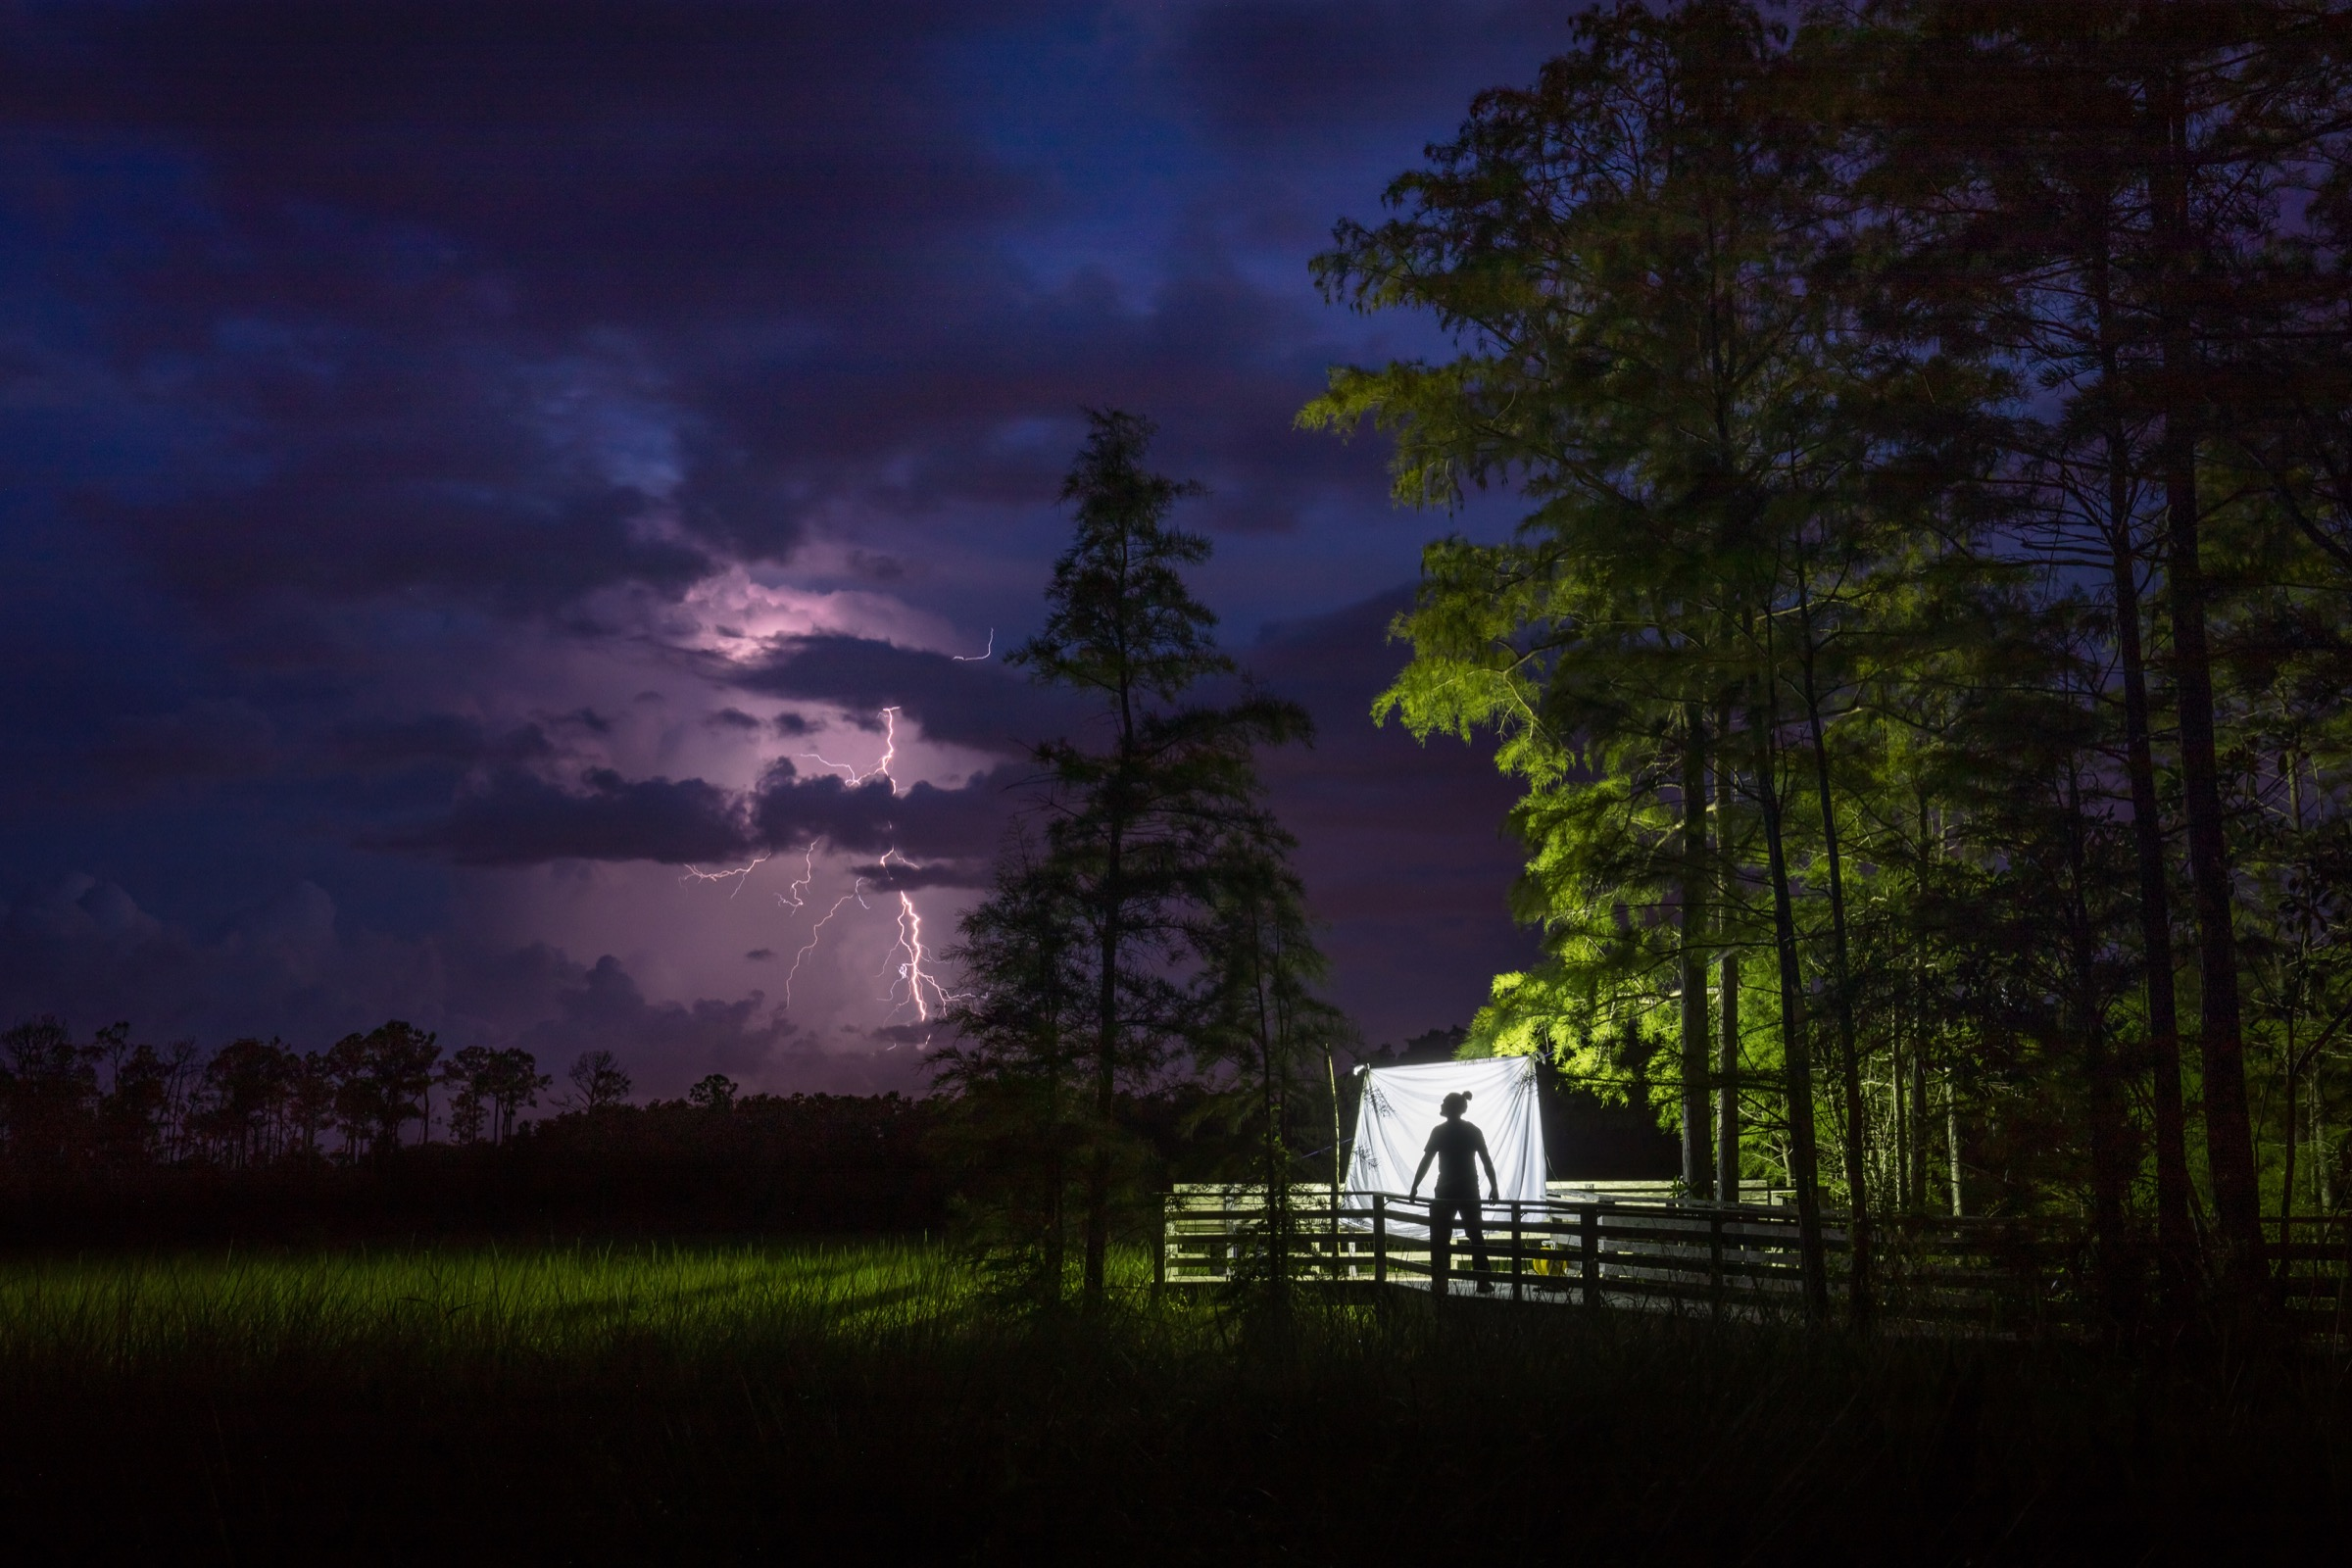 Under the veil of night, ecologist Peter Houlihan inspects a light trap designed to attract nocturnal insects in Corkscrew Swamp. Minutes after this image was captured, a giant sphinx moth flew to the trap, the first time in six years of light trapping that Houlihan managed to attract one. Photograph by Mac Stone